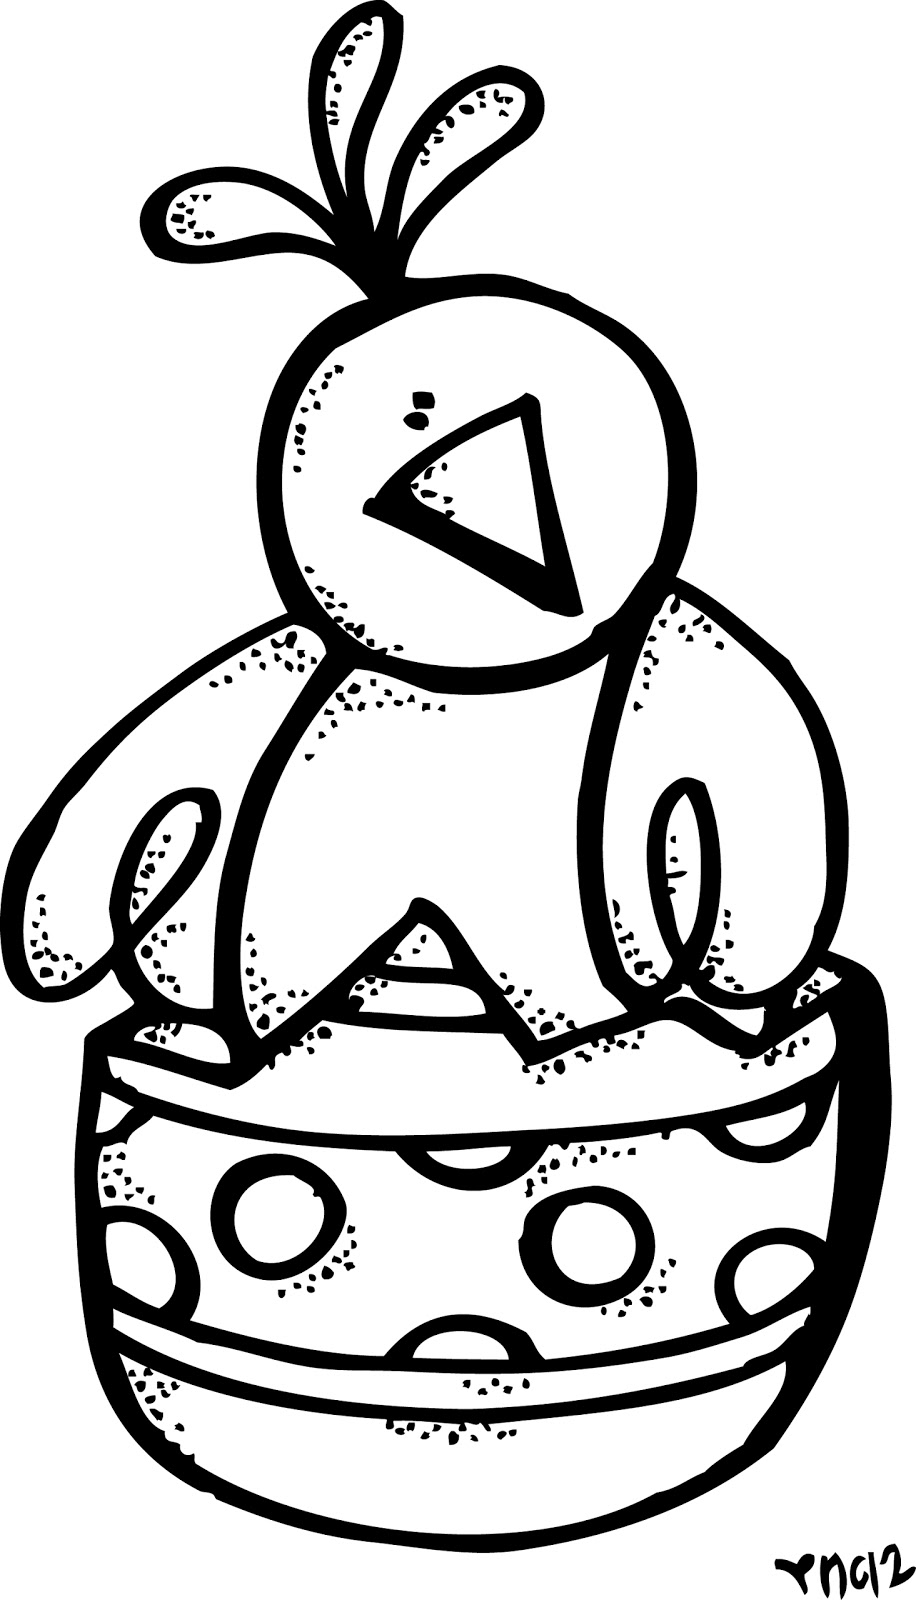 coloring pages clipart - photo#23